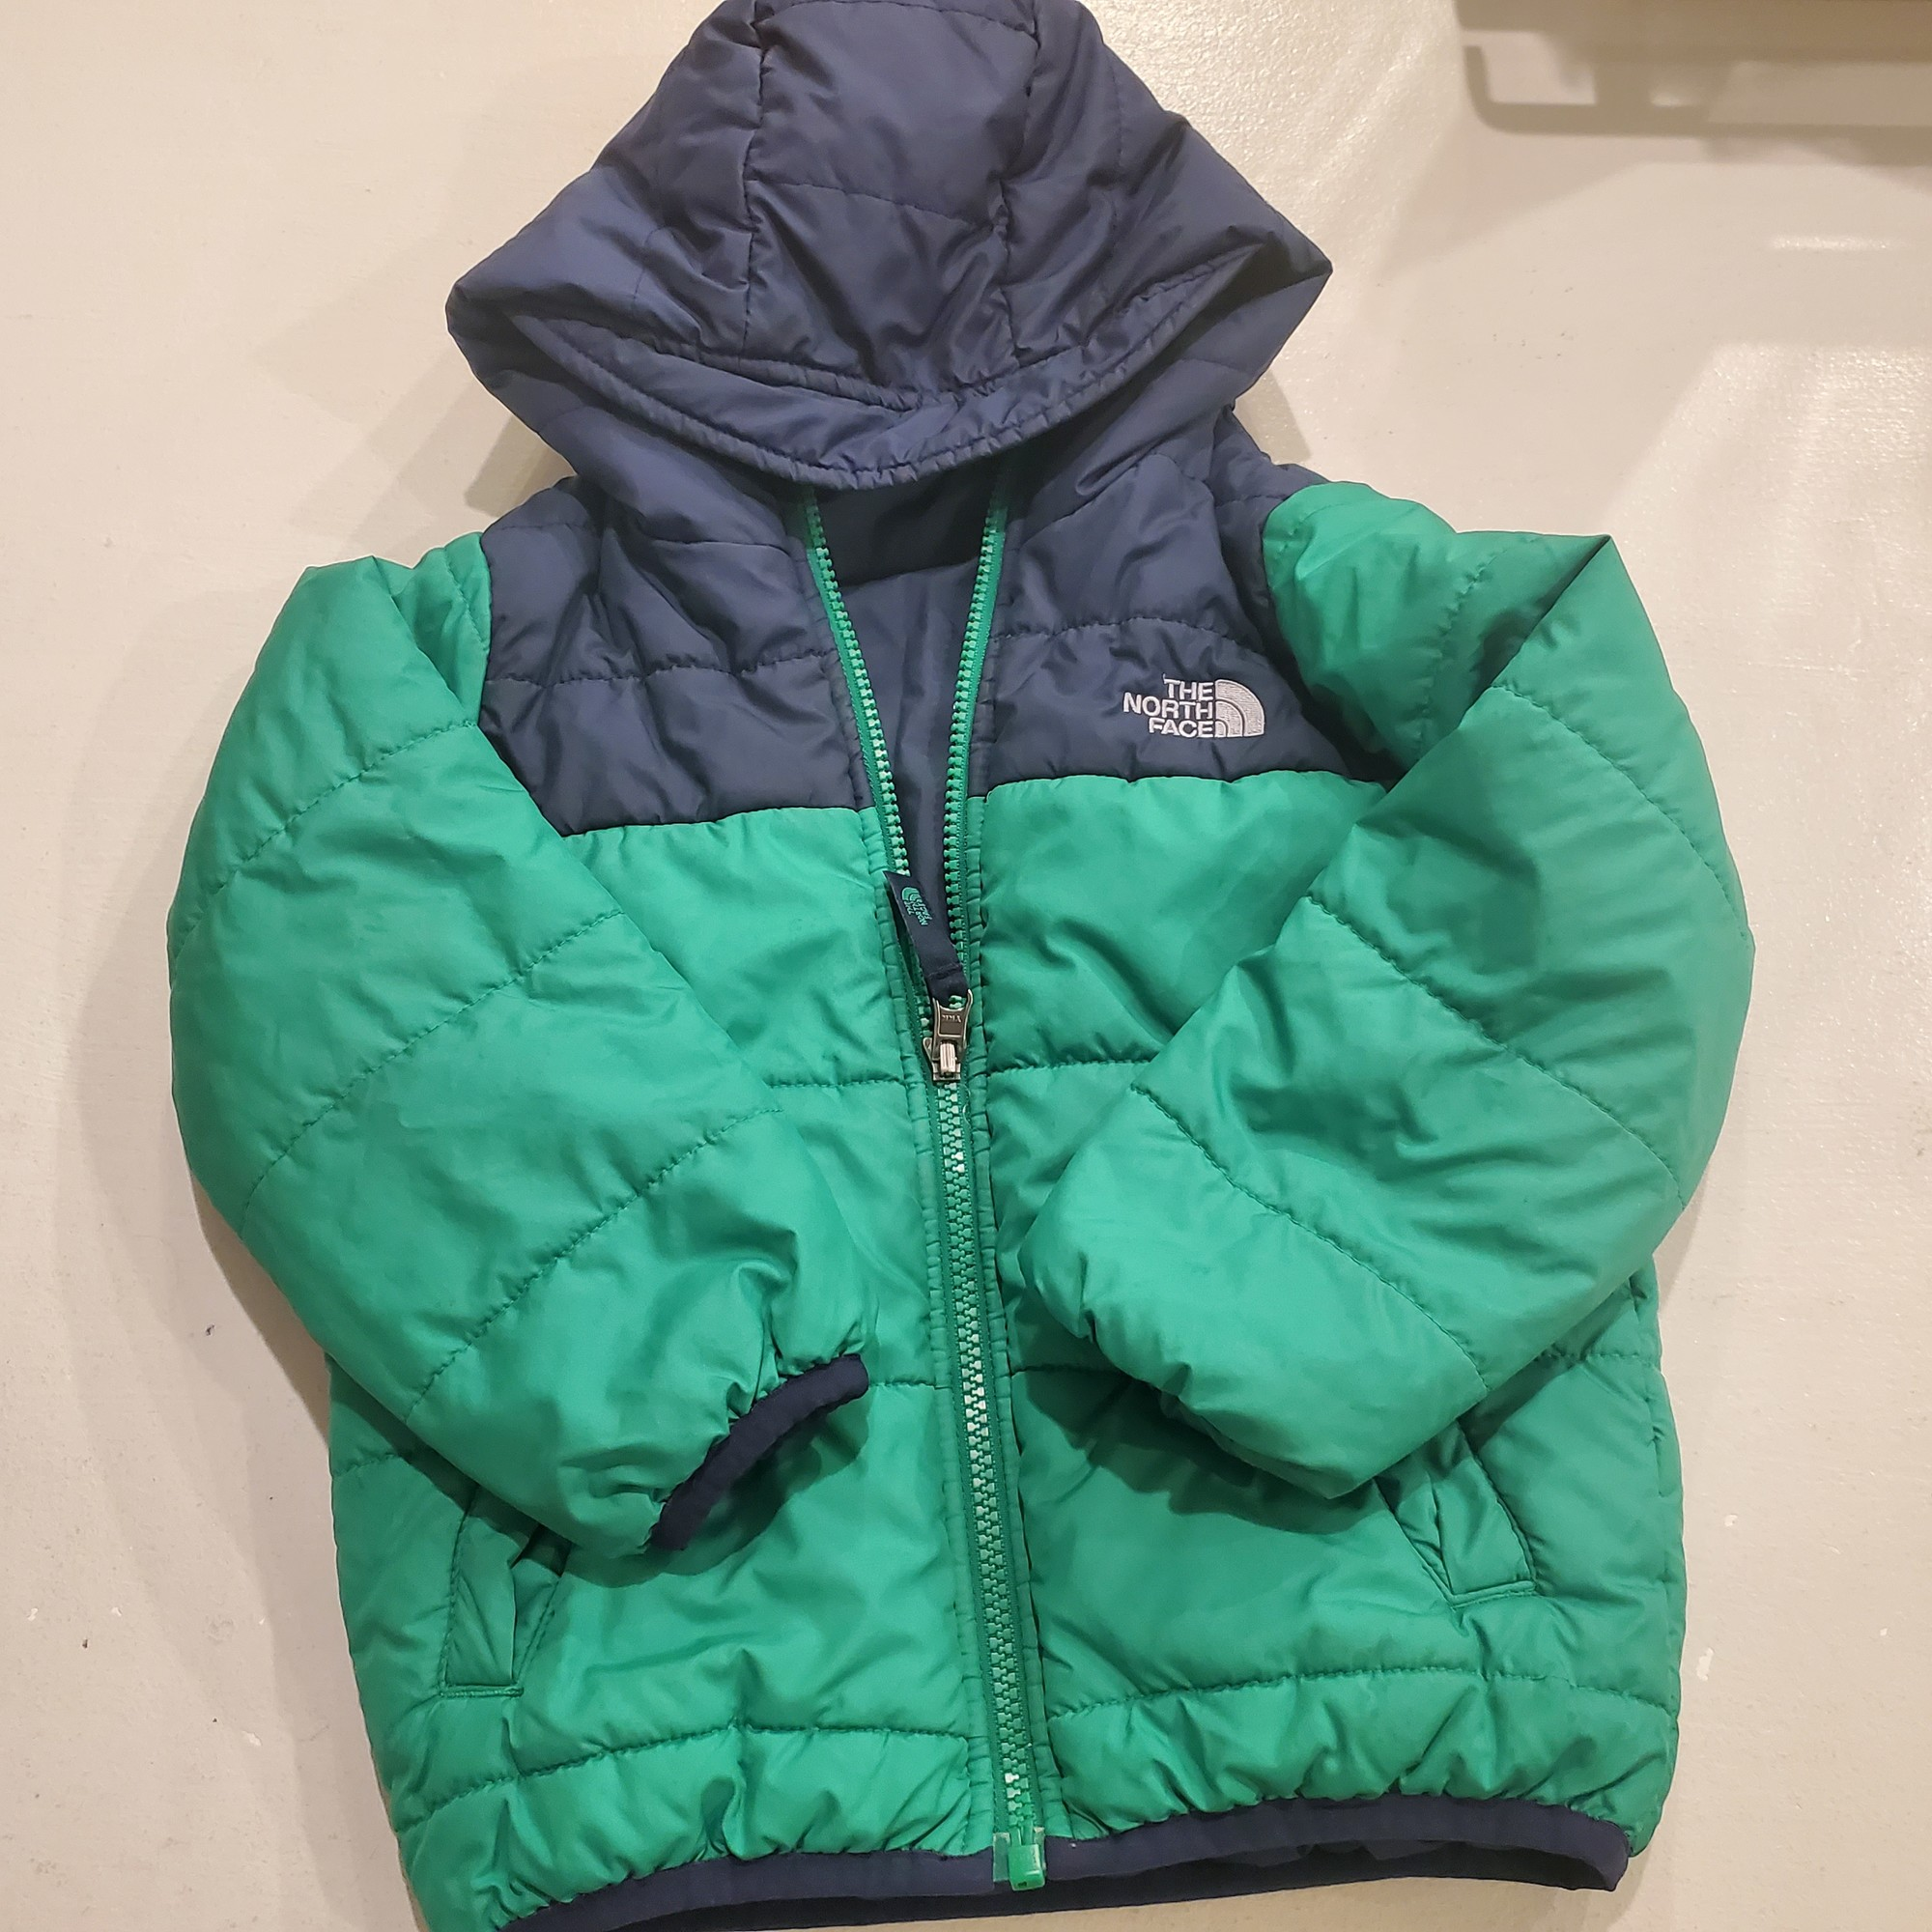 North Face Puffer SPOTS, Size: 4